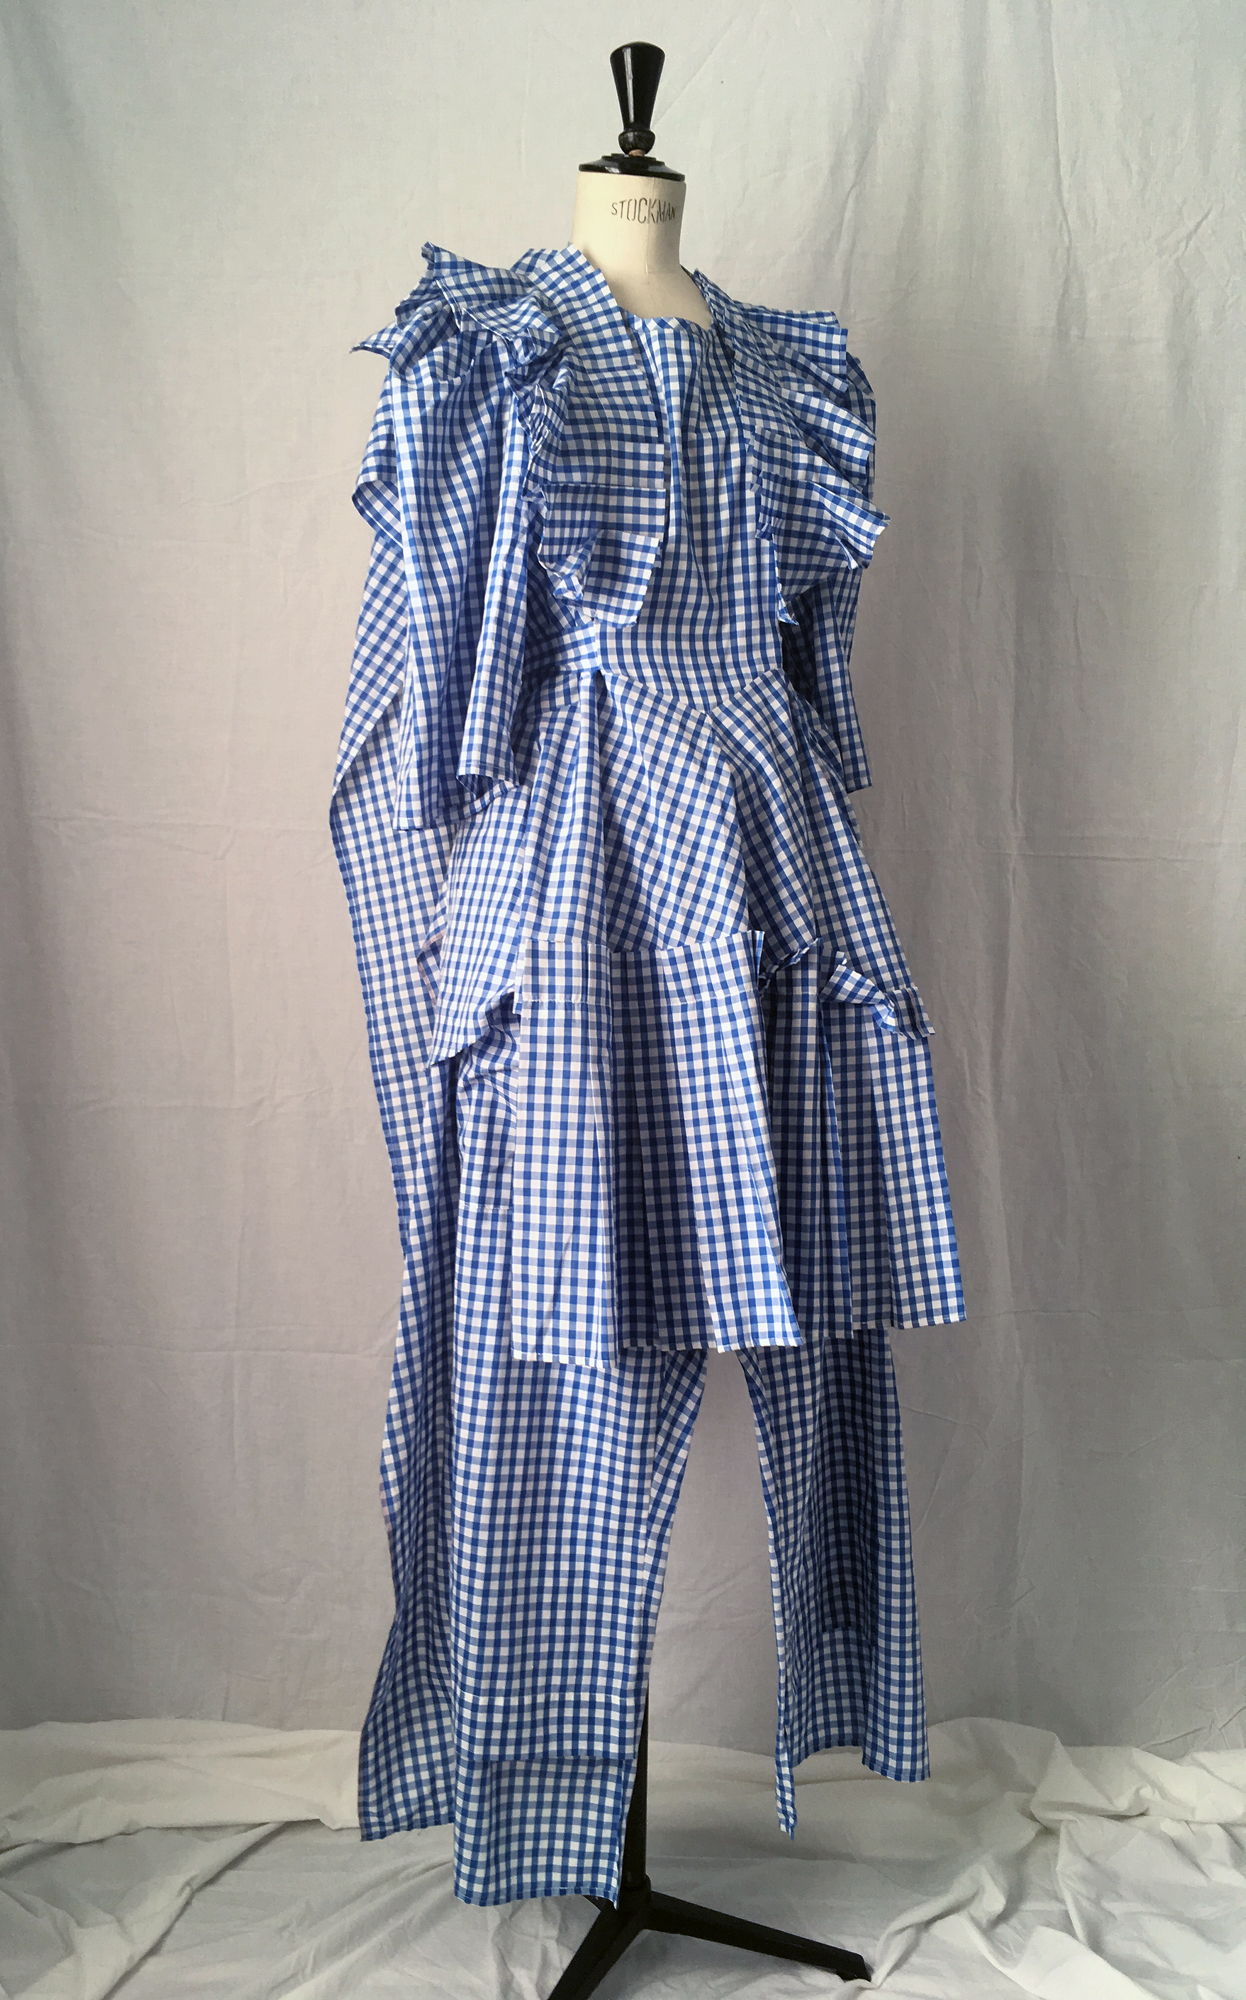 DRESS LTD Dorothy's Pyjamas Set 1: HALF APRON DOROTHY Dress & FLAT PACK PYJAMA Trousers - detail - #dressltd